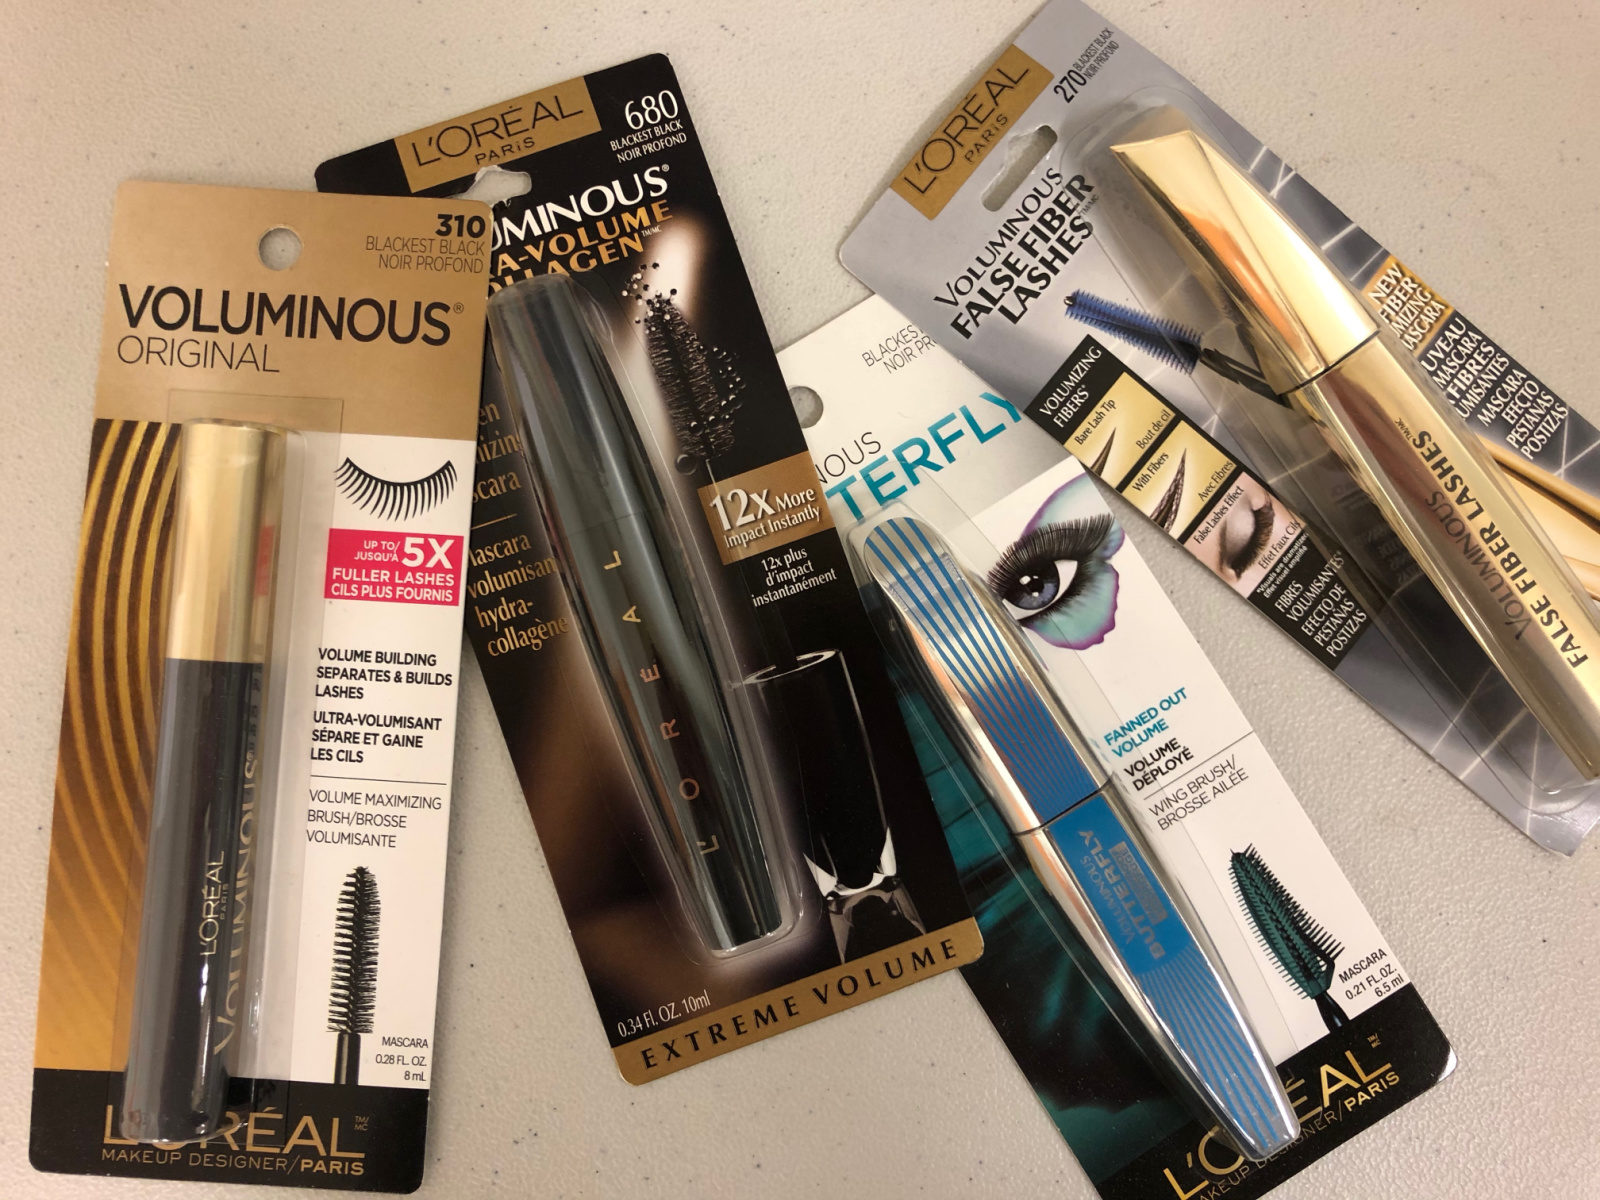 New L'Oreal Cosmetic Coupons - Eyeliner Just $3.45 At Publix on I Heart Publix 1